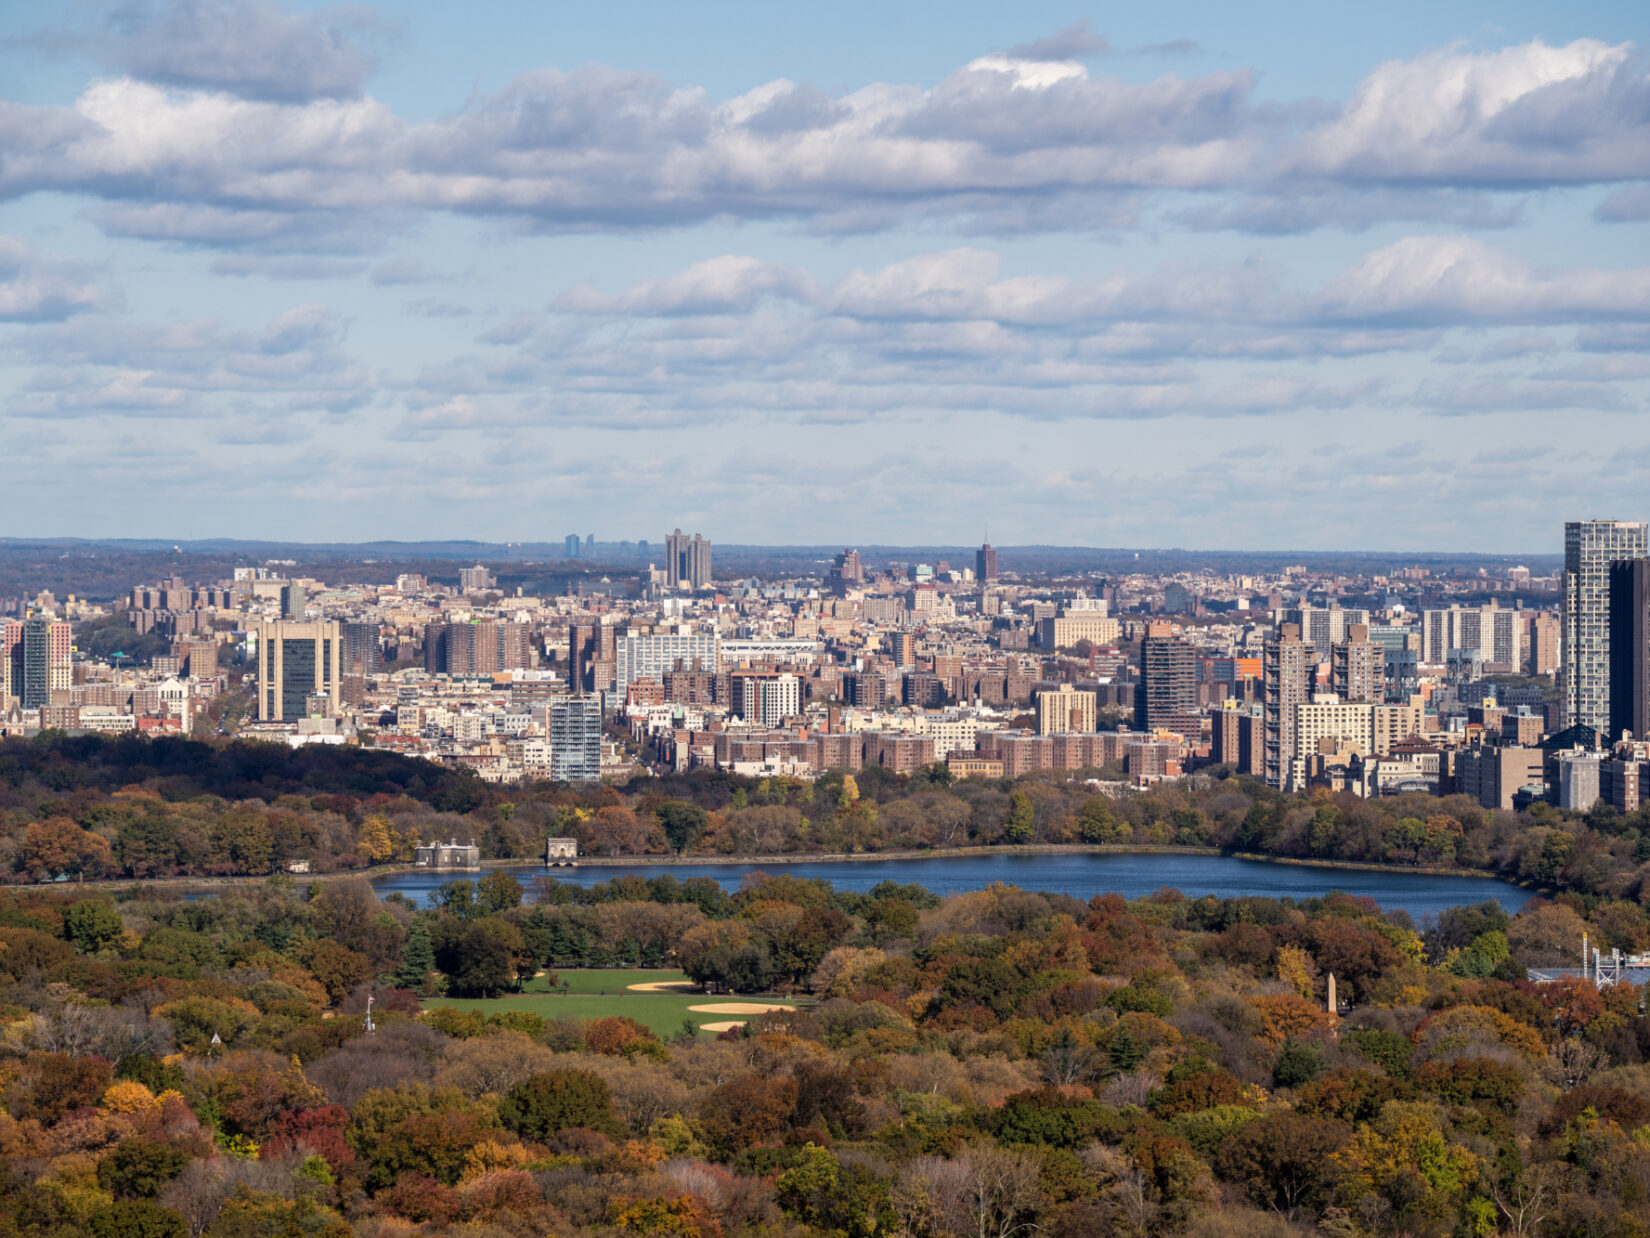 An aerial view looking north from the end of the Great Lawn, past the Reservoir, to the skyline of Harlem in the background